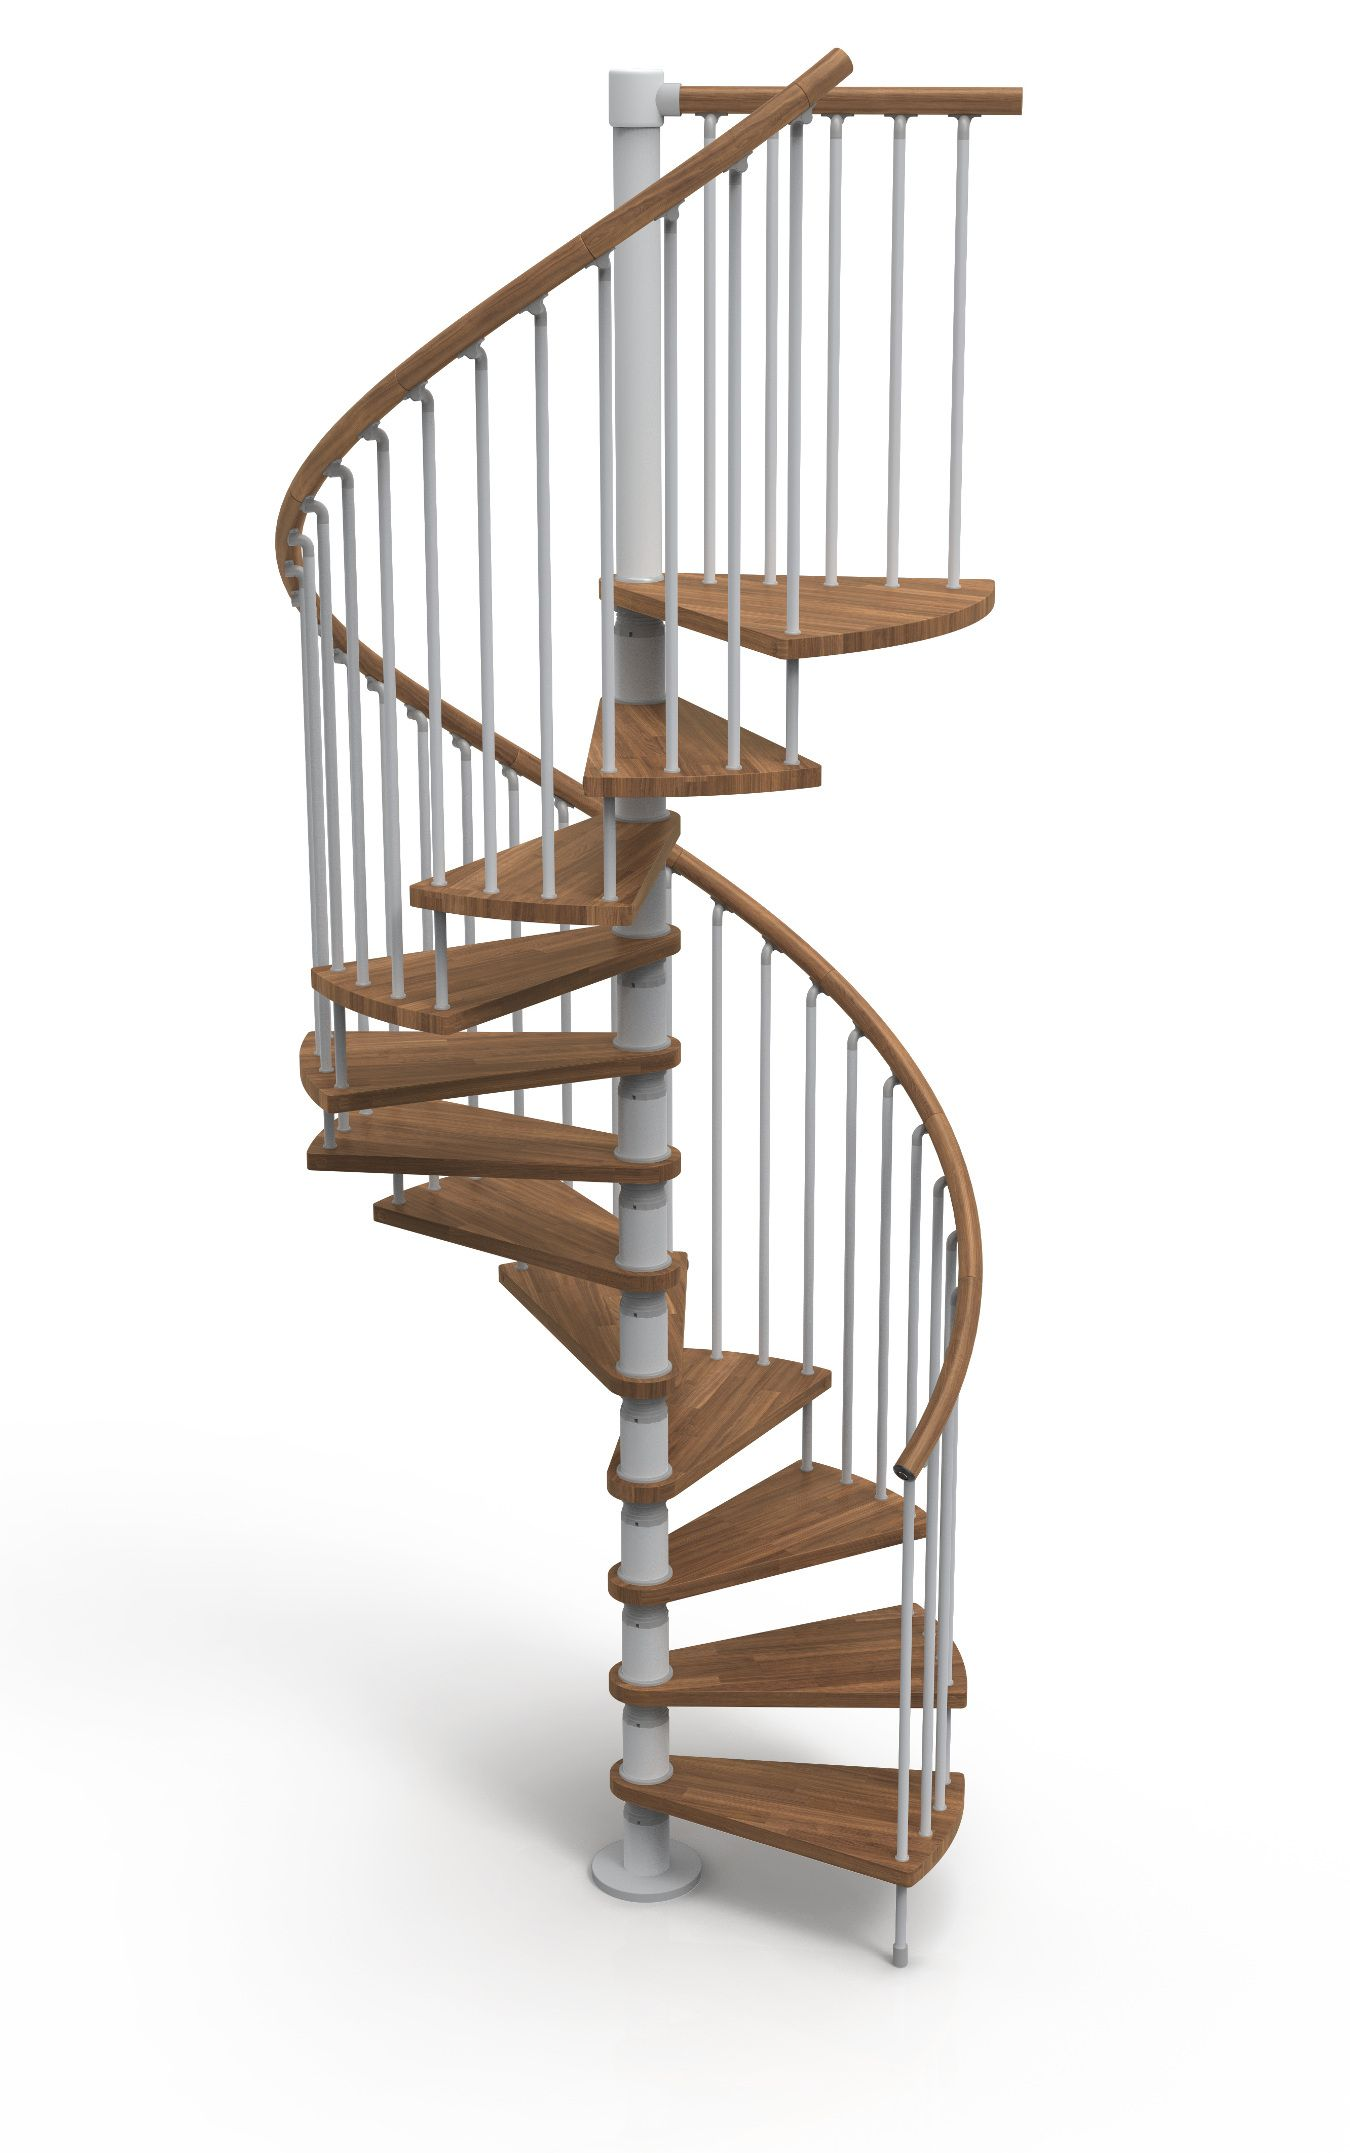 Best Gamia Wood Deluxe Spiral Stair Kit Complete With Solid 400 x 300